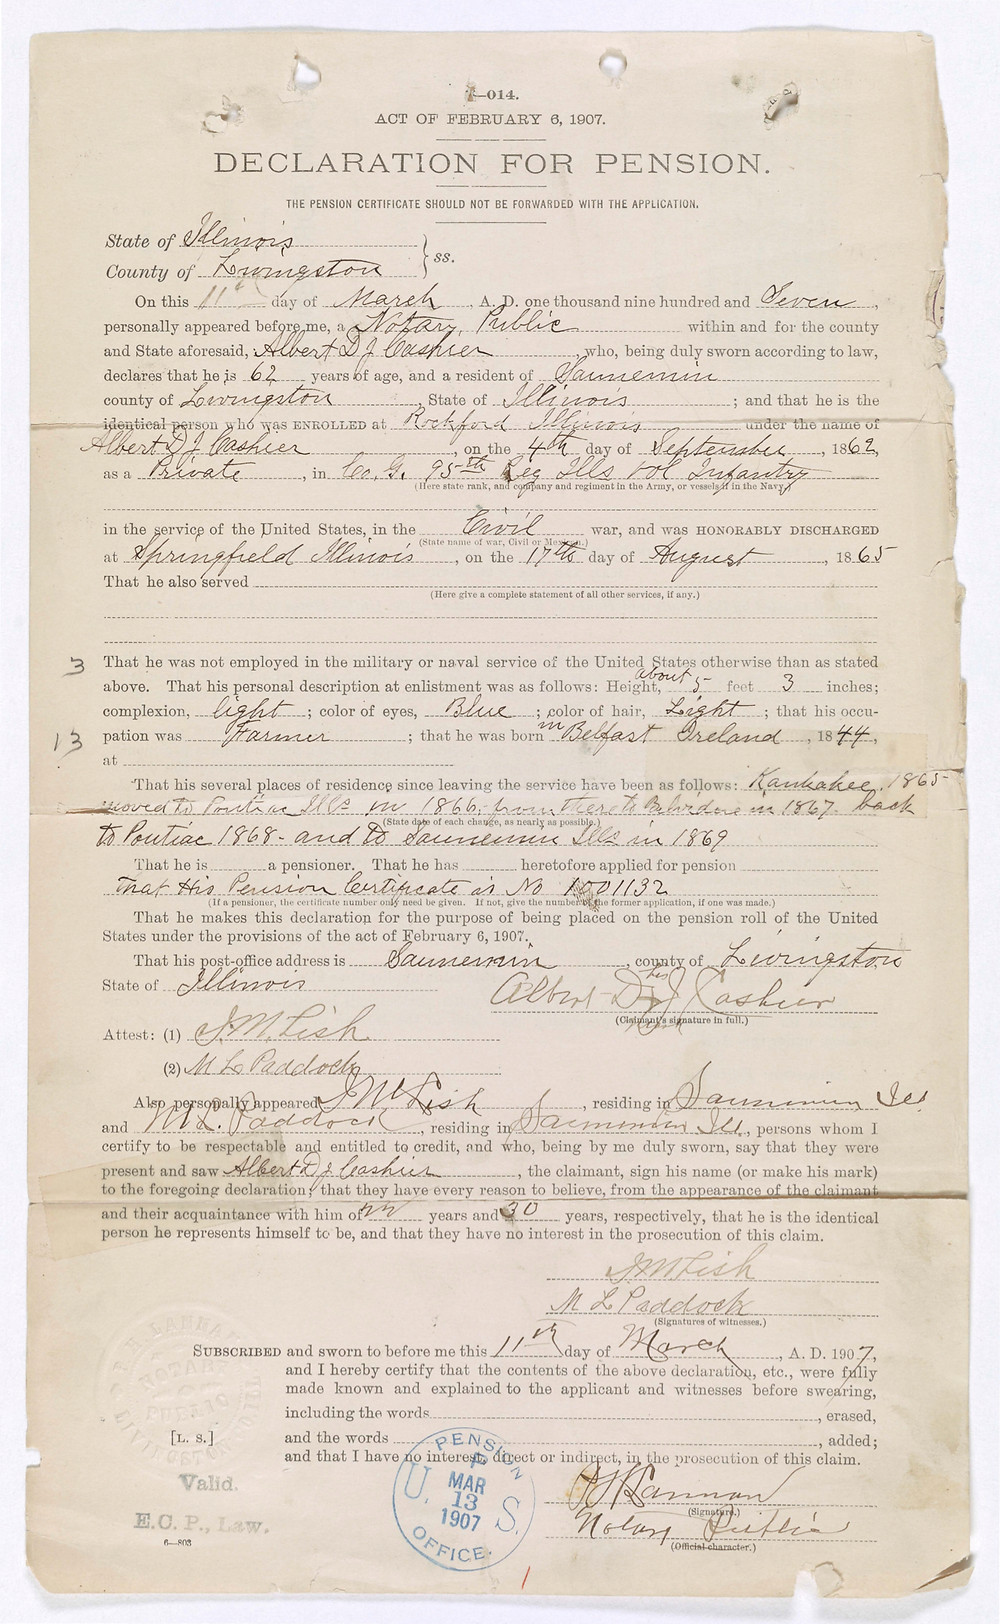 A document requesting a military pension on behalf of Albert Cashier